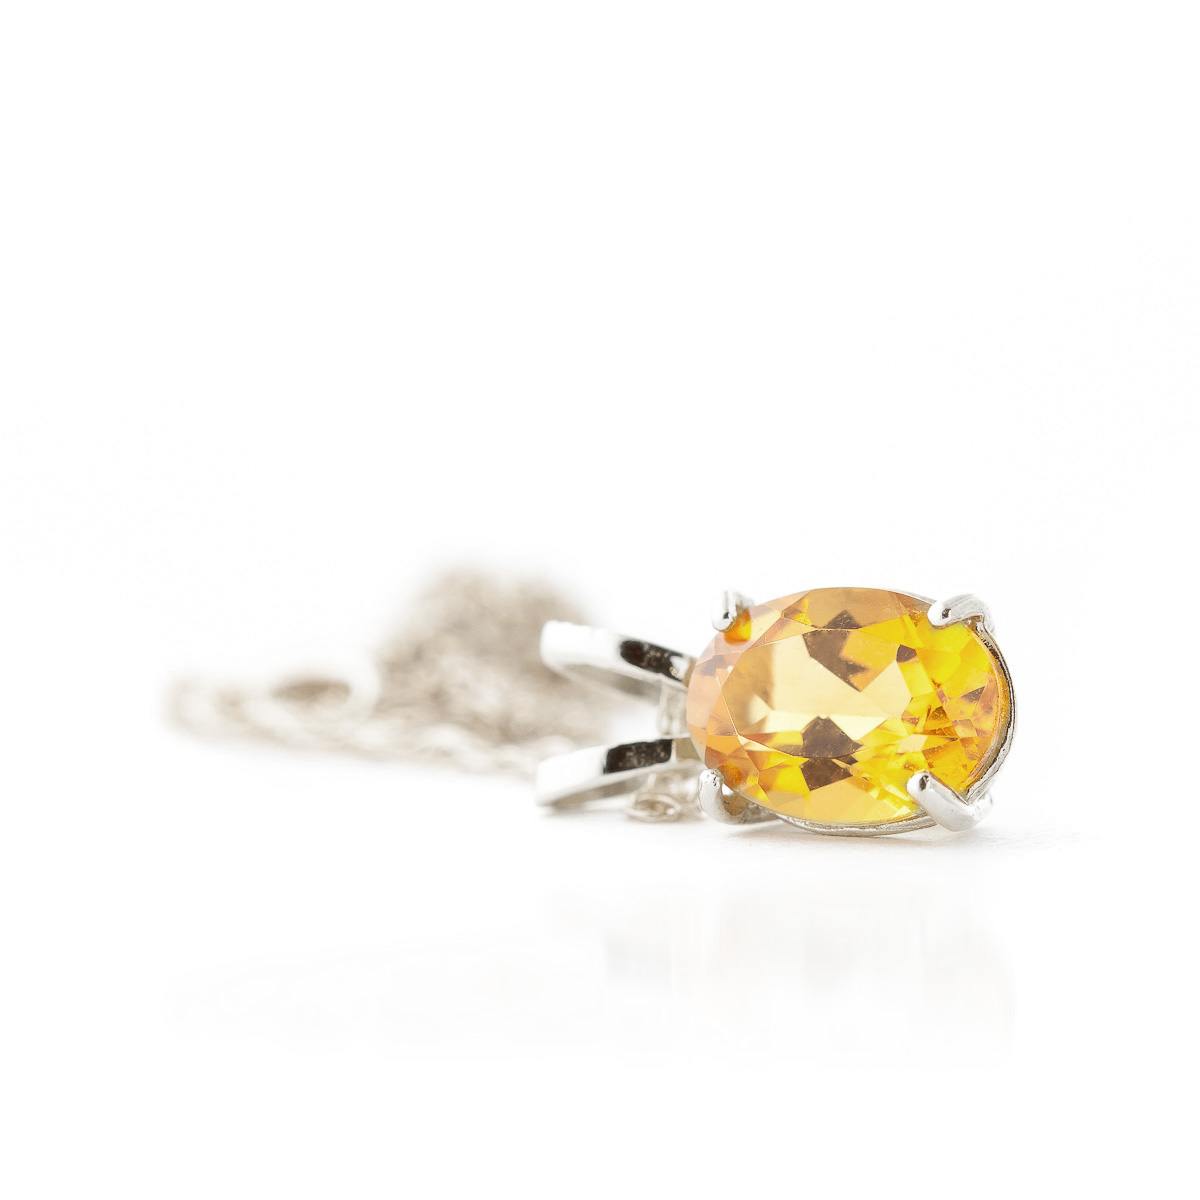 Oval Cut Citrine Pendant Necklace 0.85ct in 14K White Gold